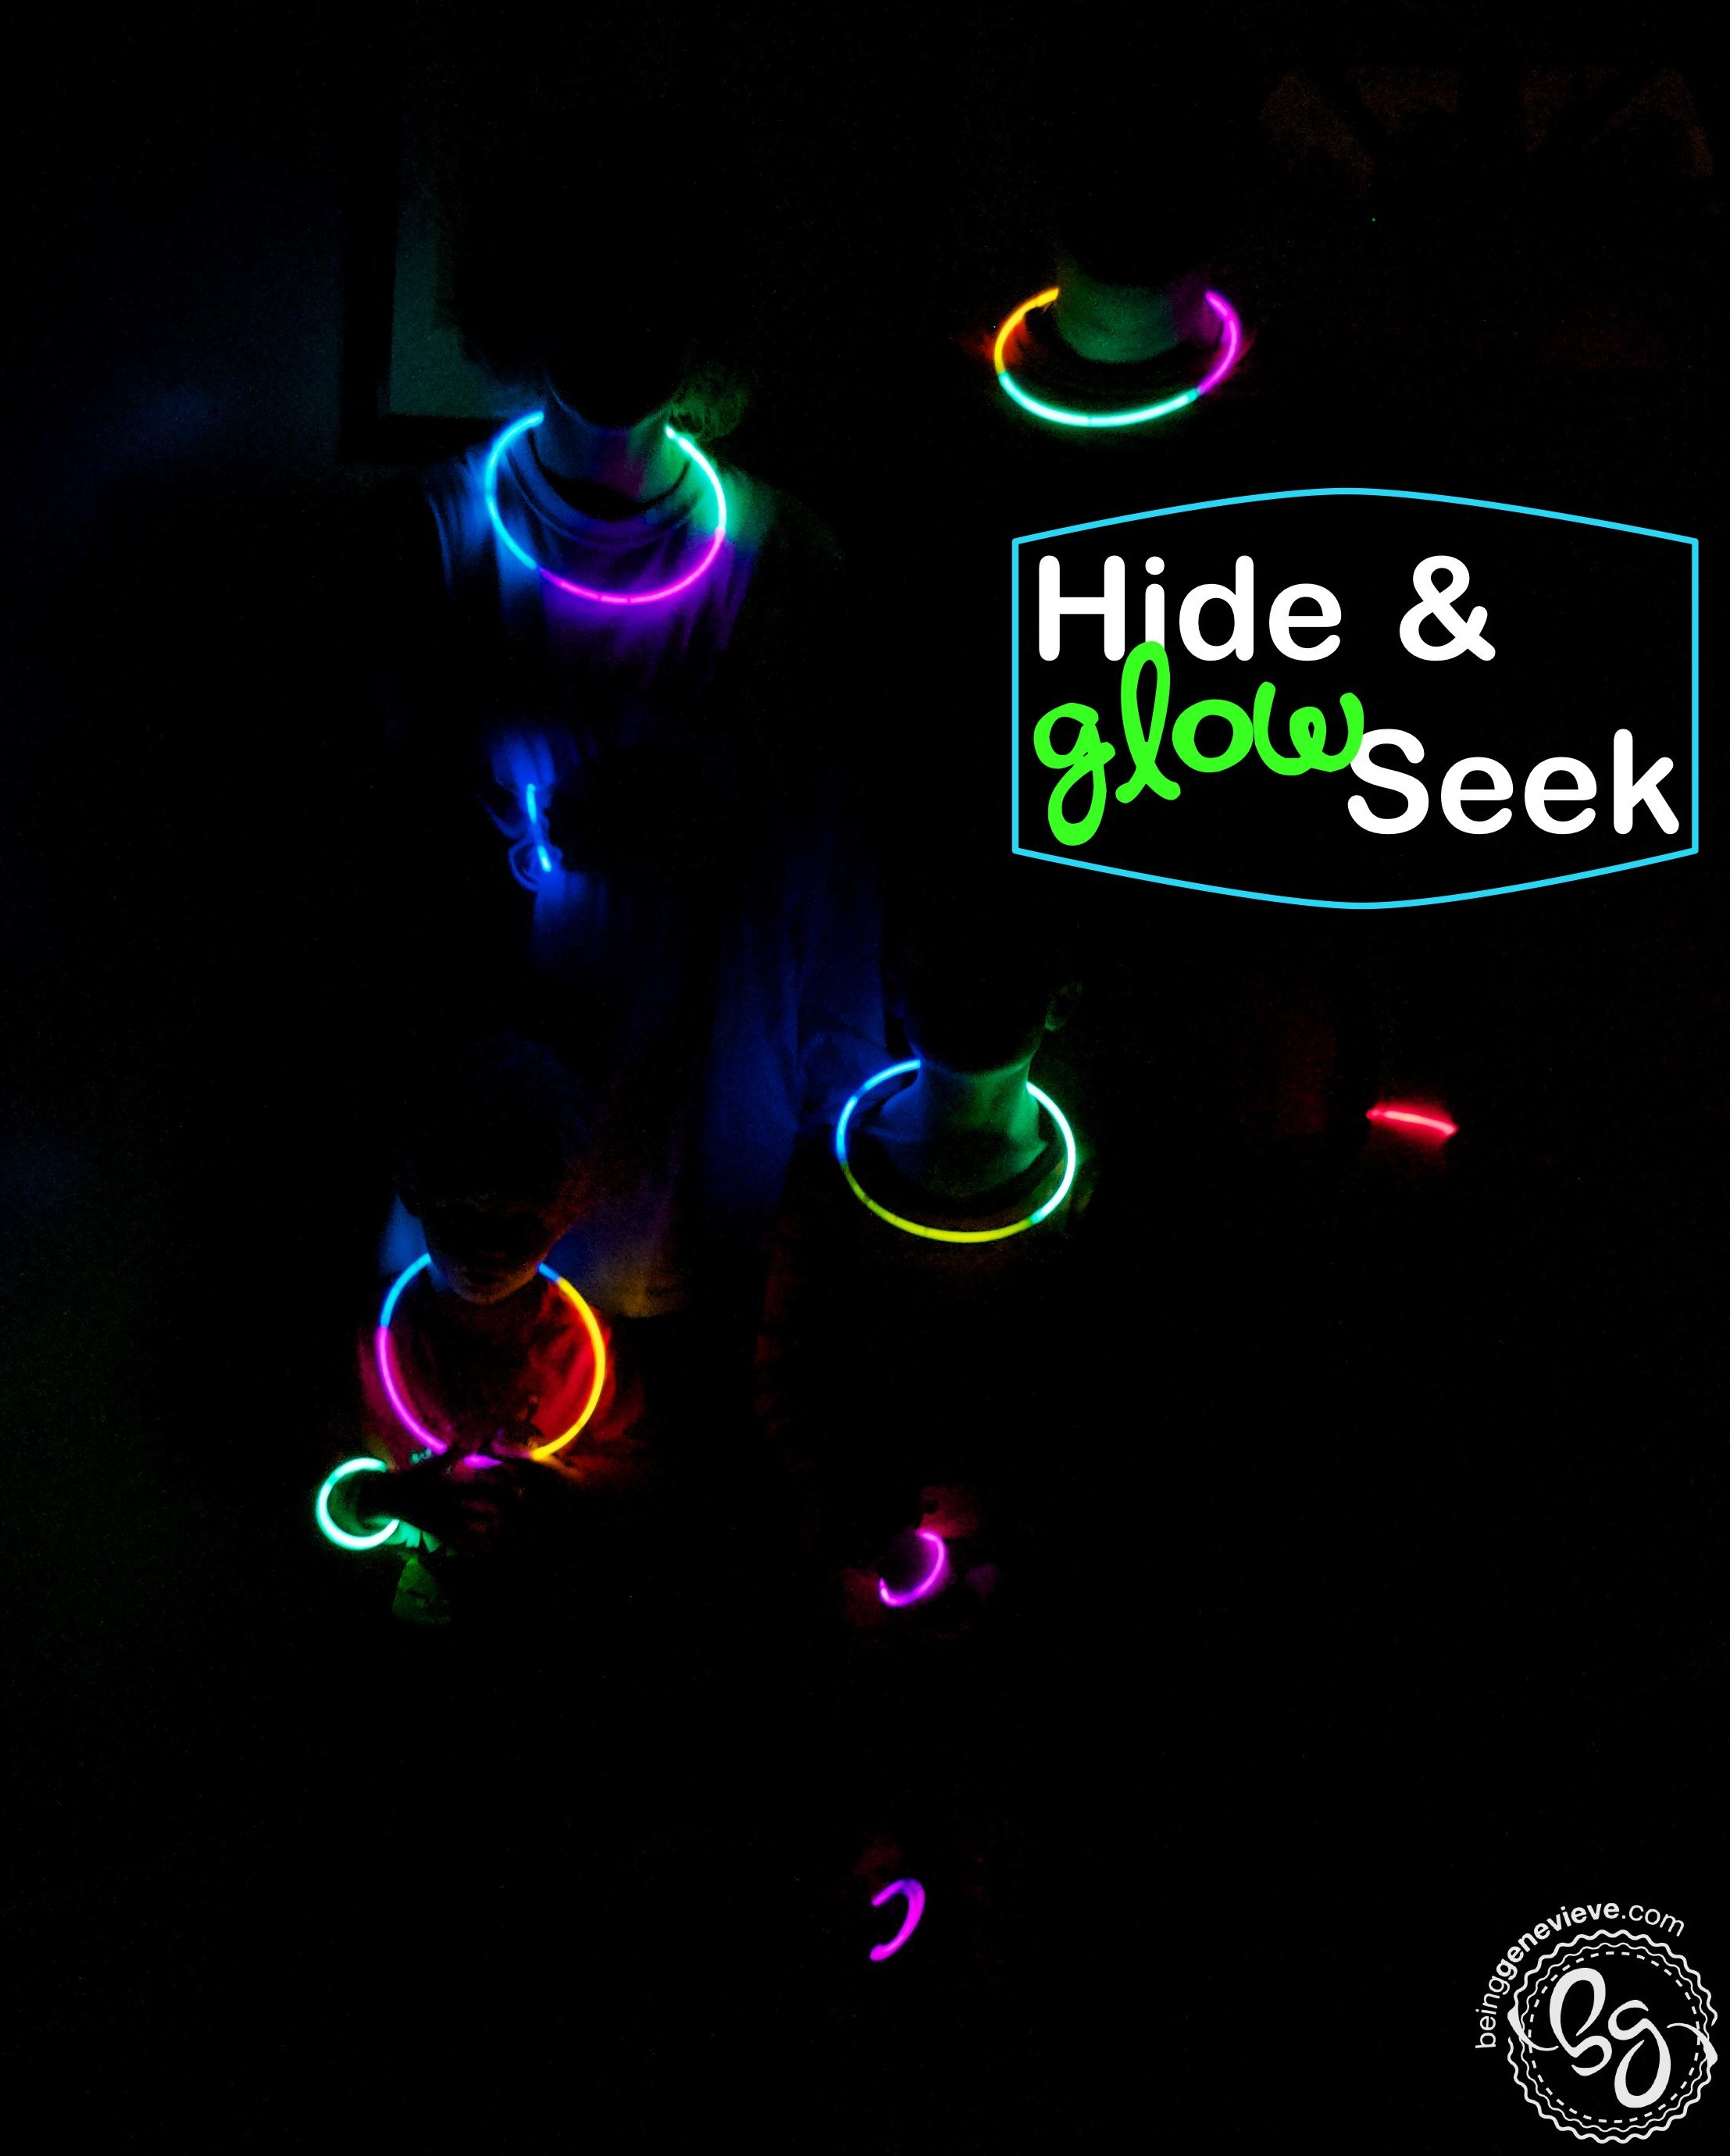 Hide and Glow Seek